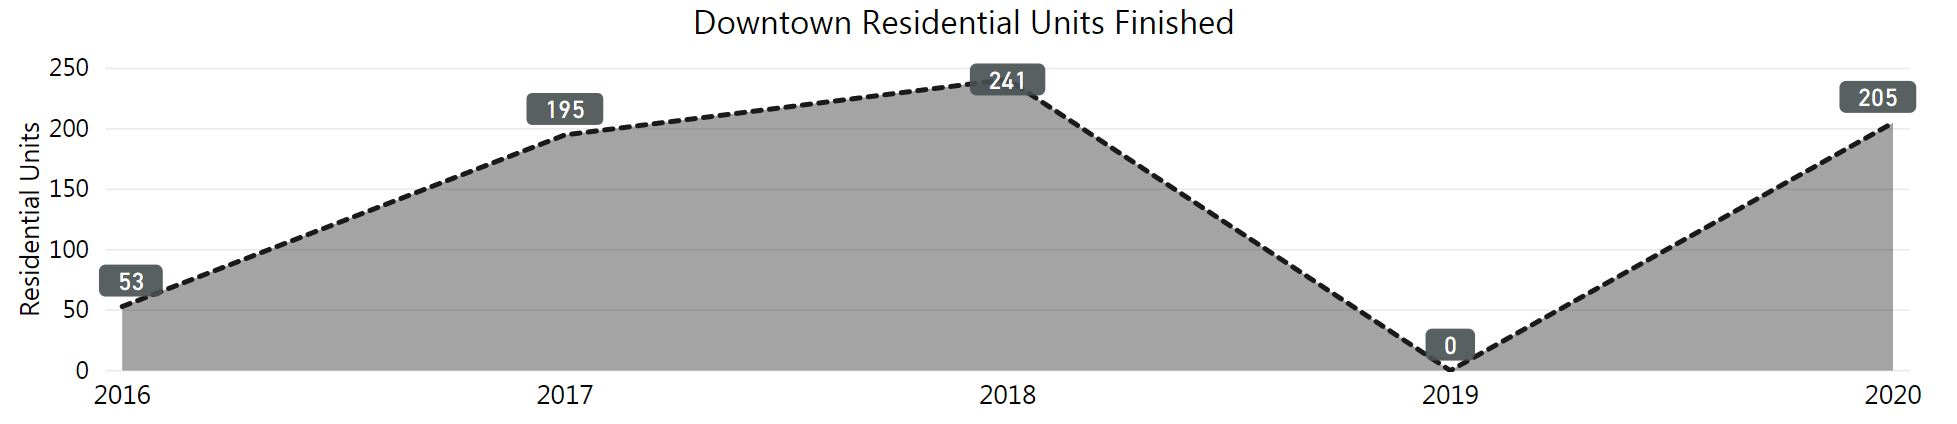 graph of downtown residential units finished. low 2019 zero. High 2020 at 205.